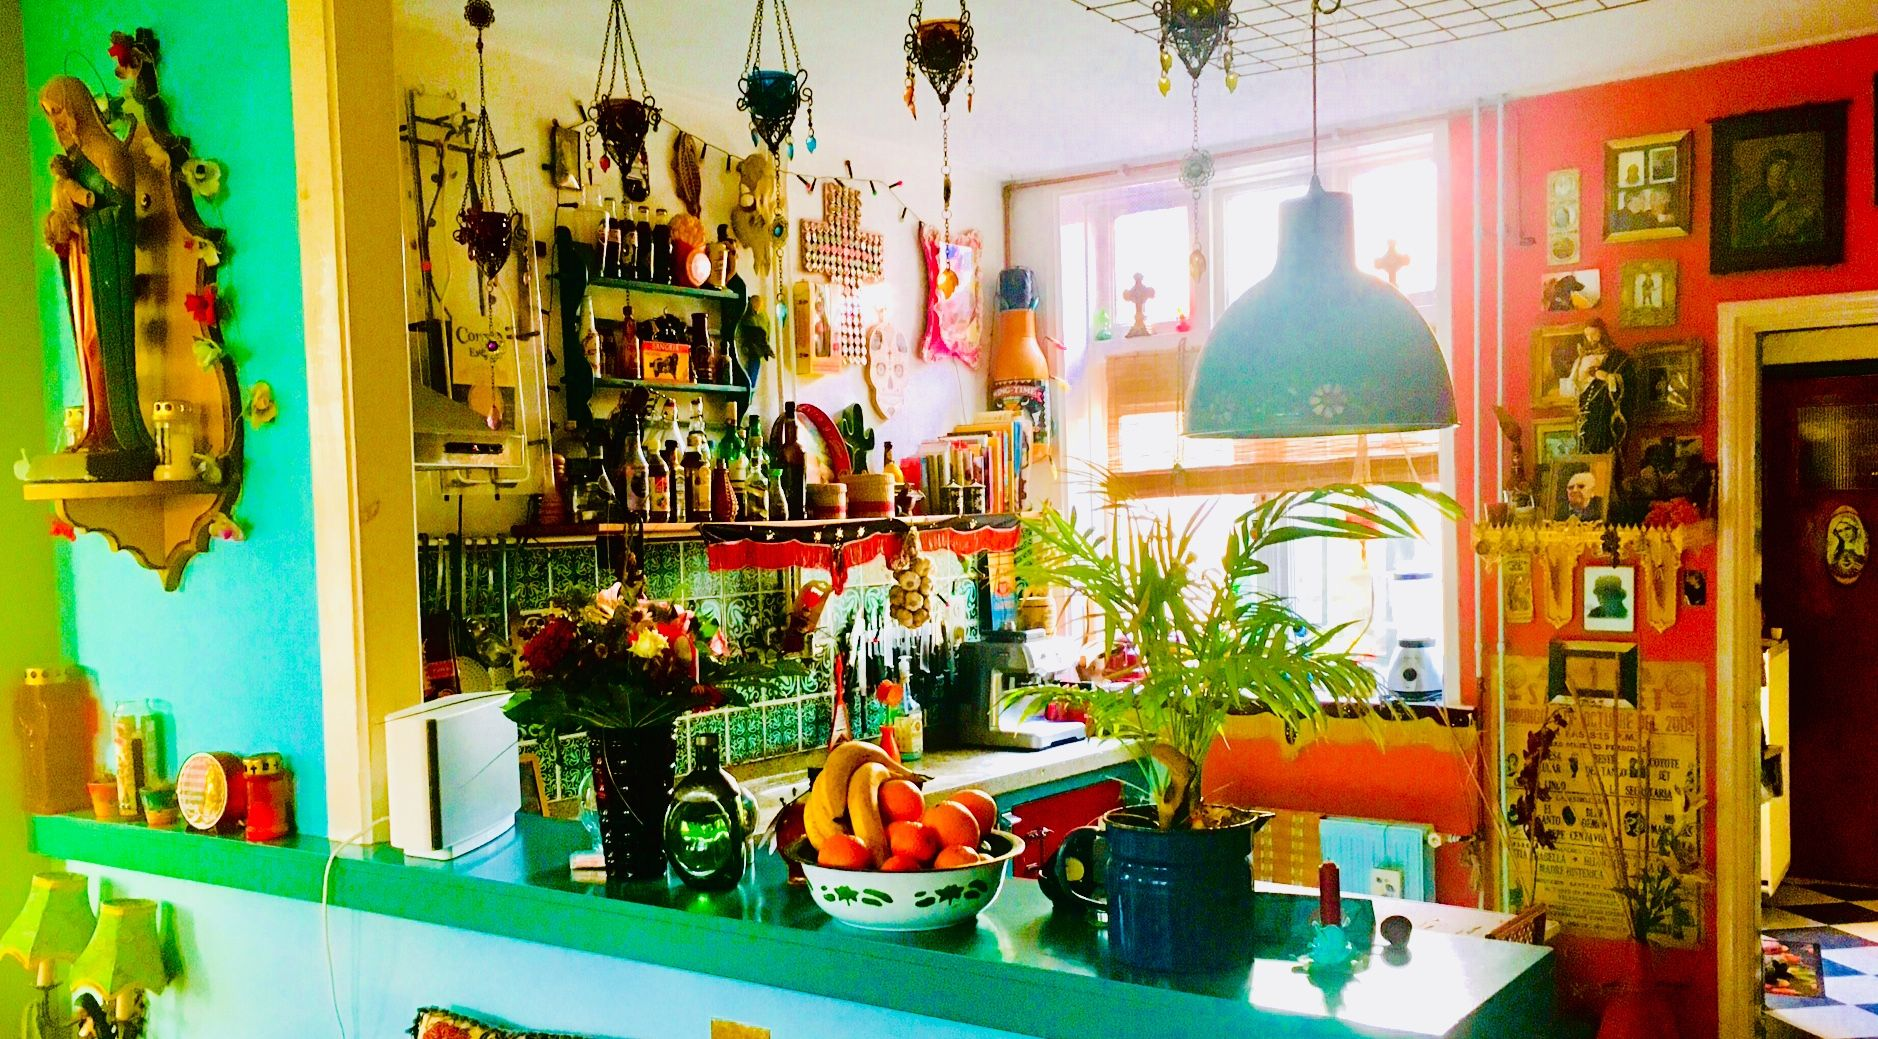 time for new kitchentable memories boho kitchen hippie kitchen kitchen styling on kitchen decor hippie id=82033